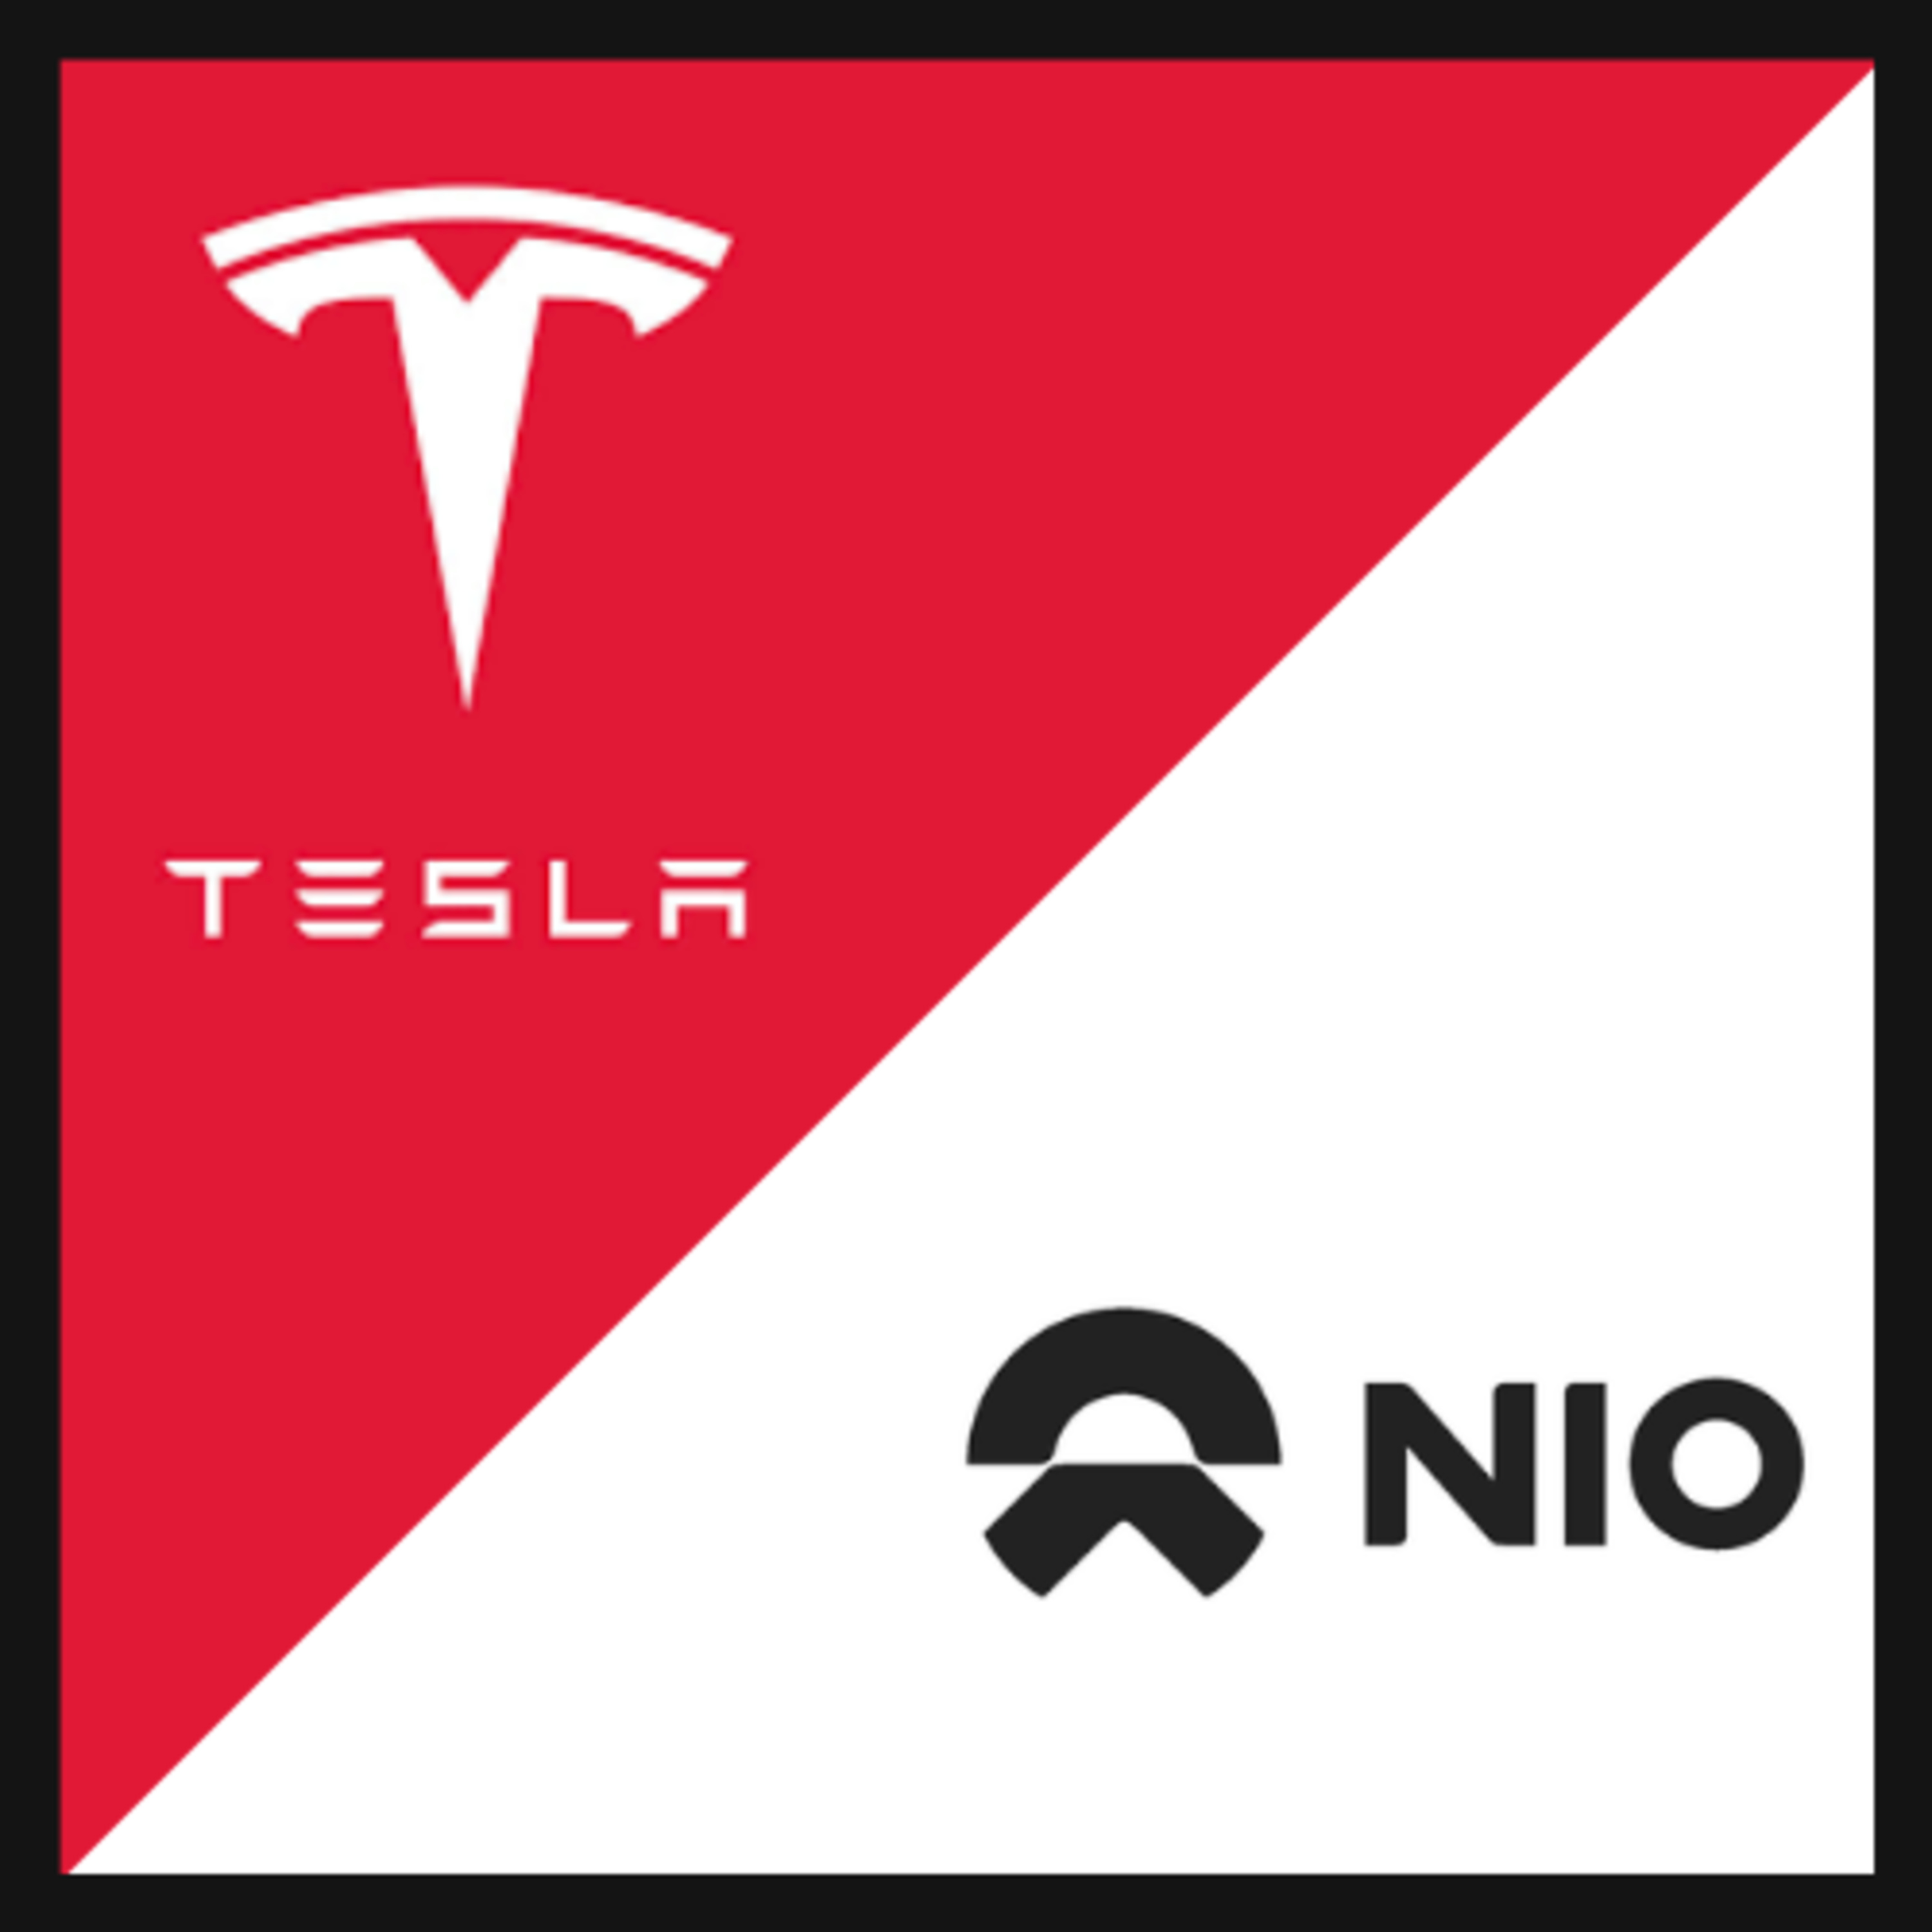 """Stock Talk - Investing In the Future of Electric Vehicles - """"Nio vs Tesla - Stock Bubble or Opportunity?"""""""